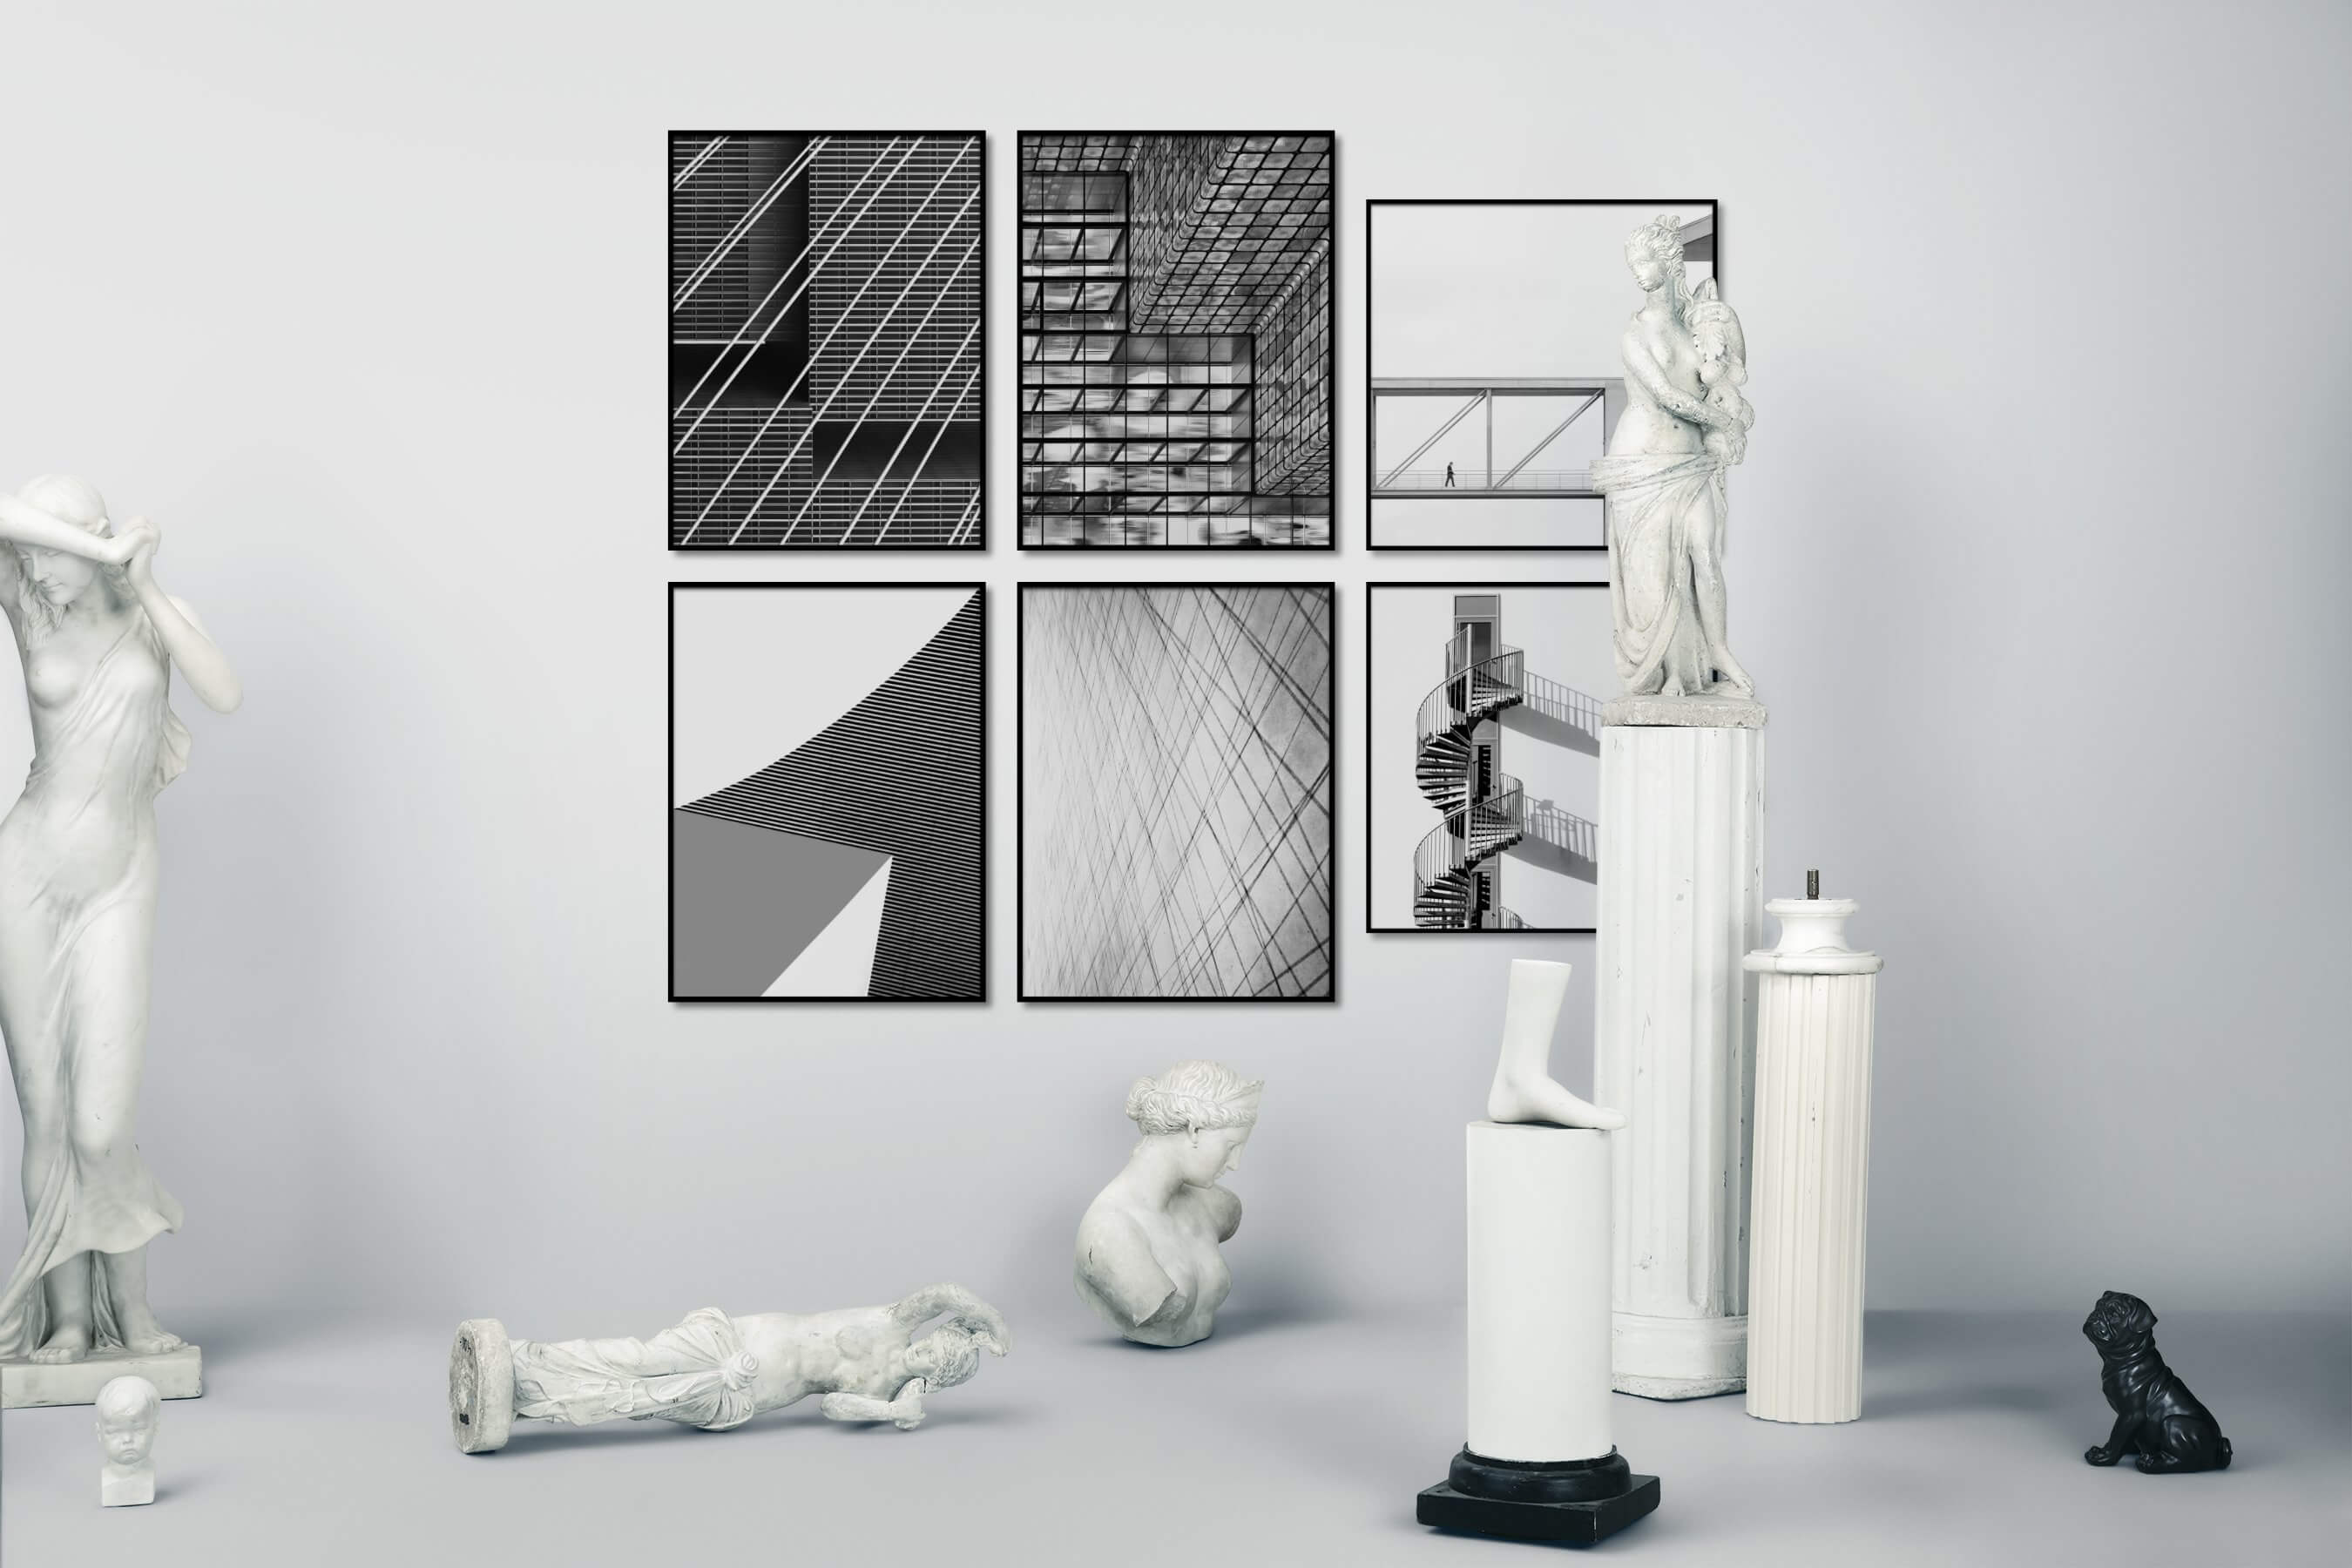 Gallery wall idea with six framed pictures arranged on a wall depicting Black & White, For the Maximalist, For the Minimalist, For the Moderate, and Bright Tones